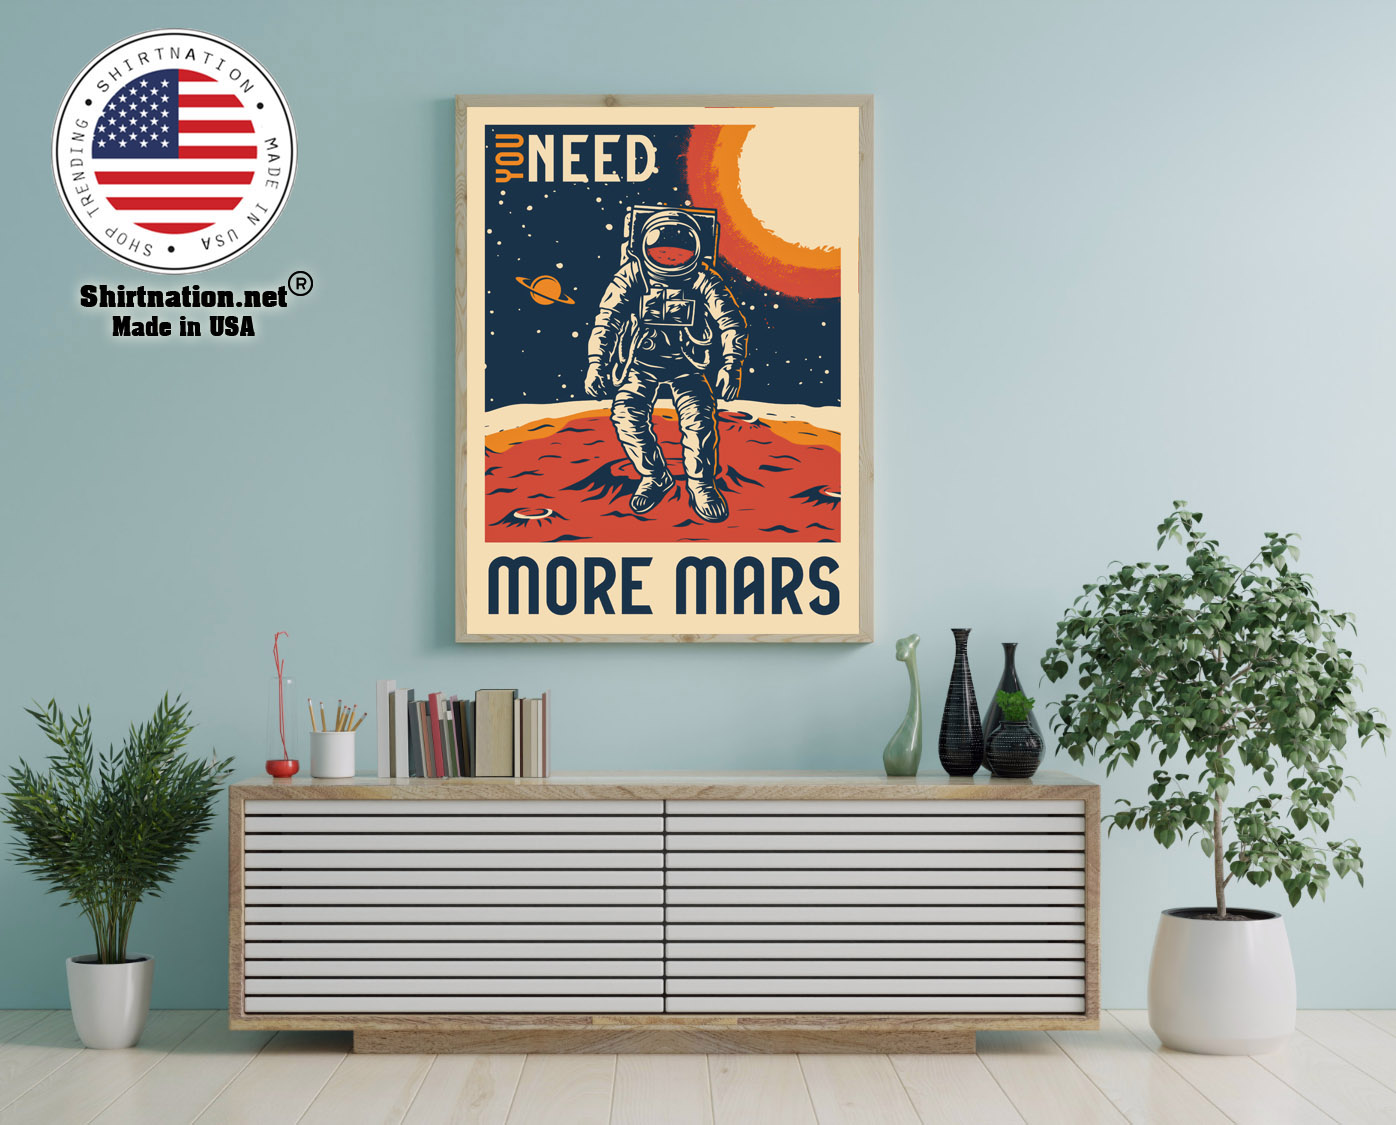 Astronaut You need more mars poster 12